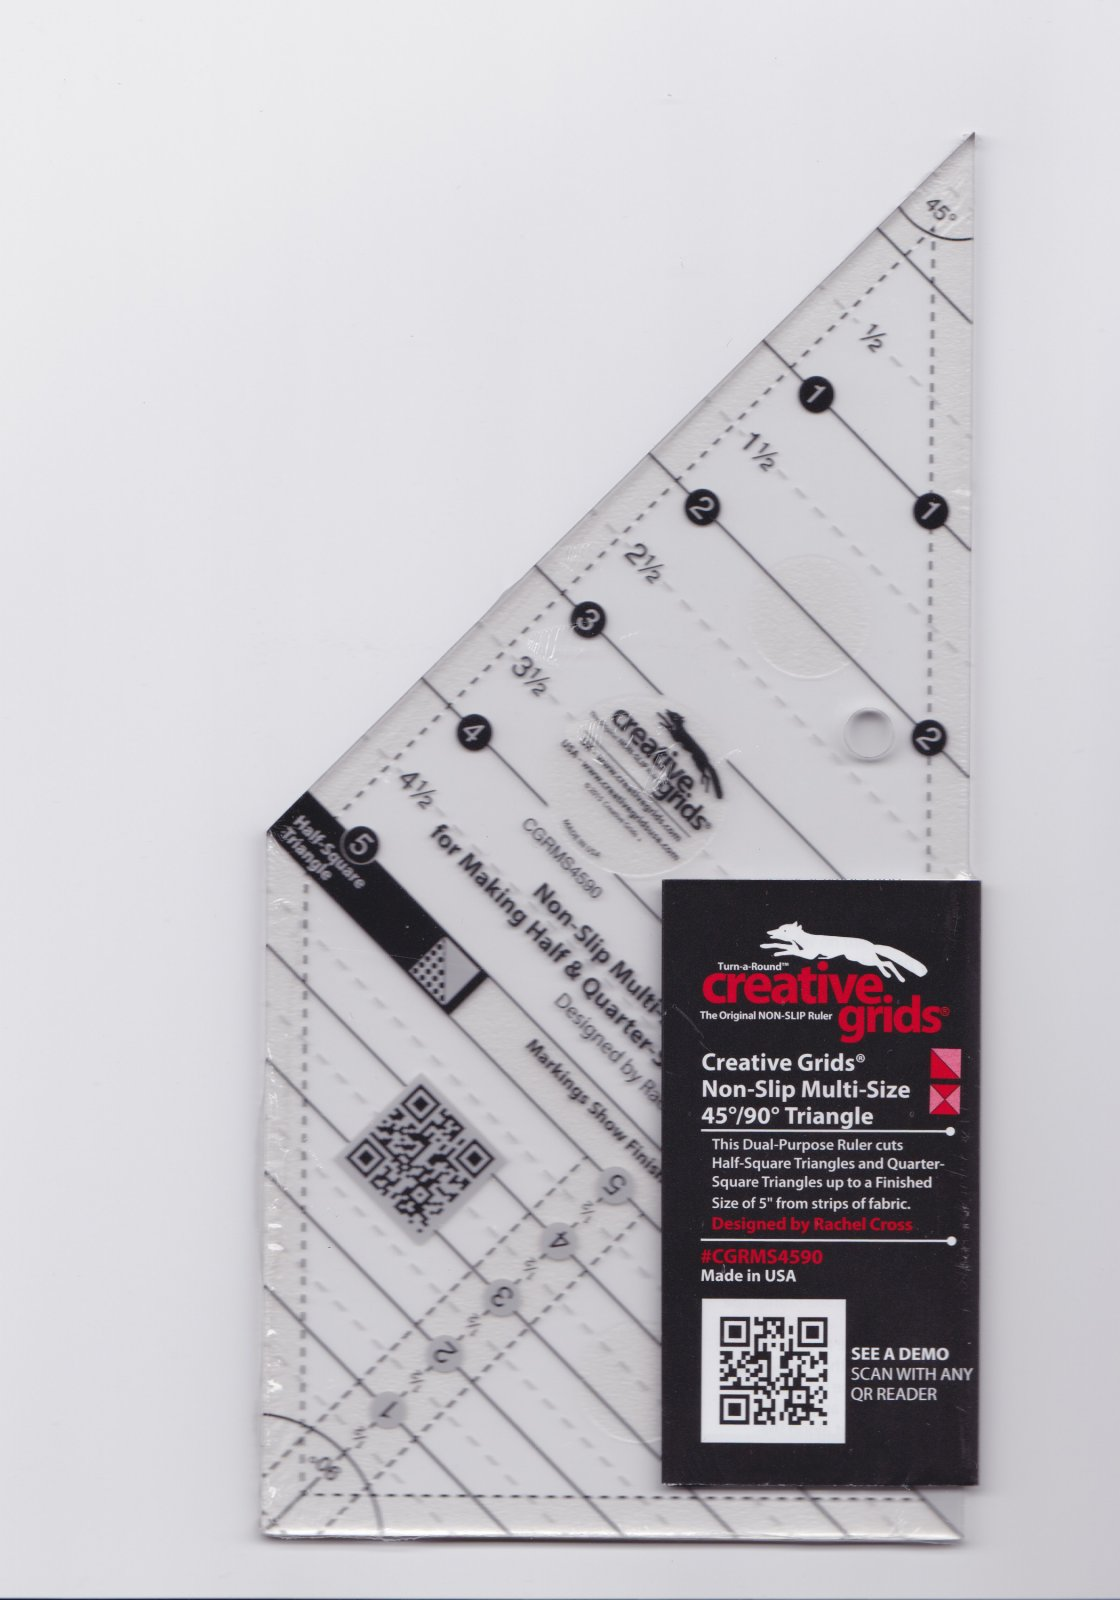 Creative Grids Multi Size Triangle Ruler